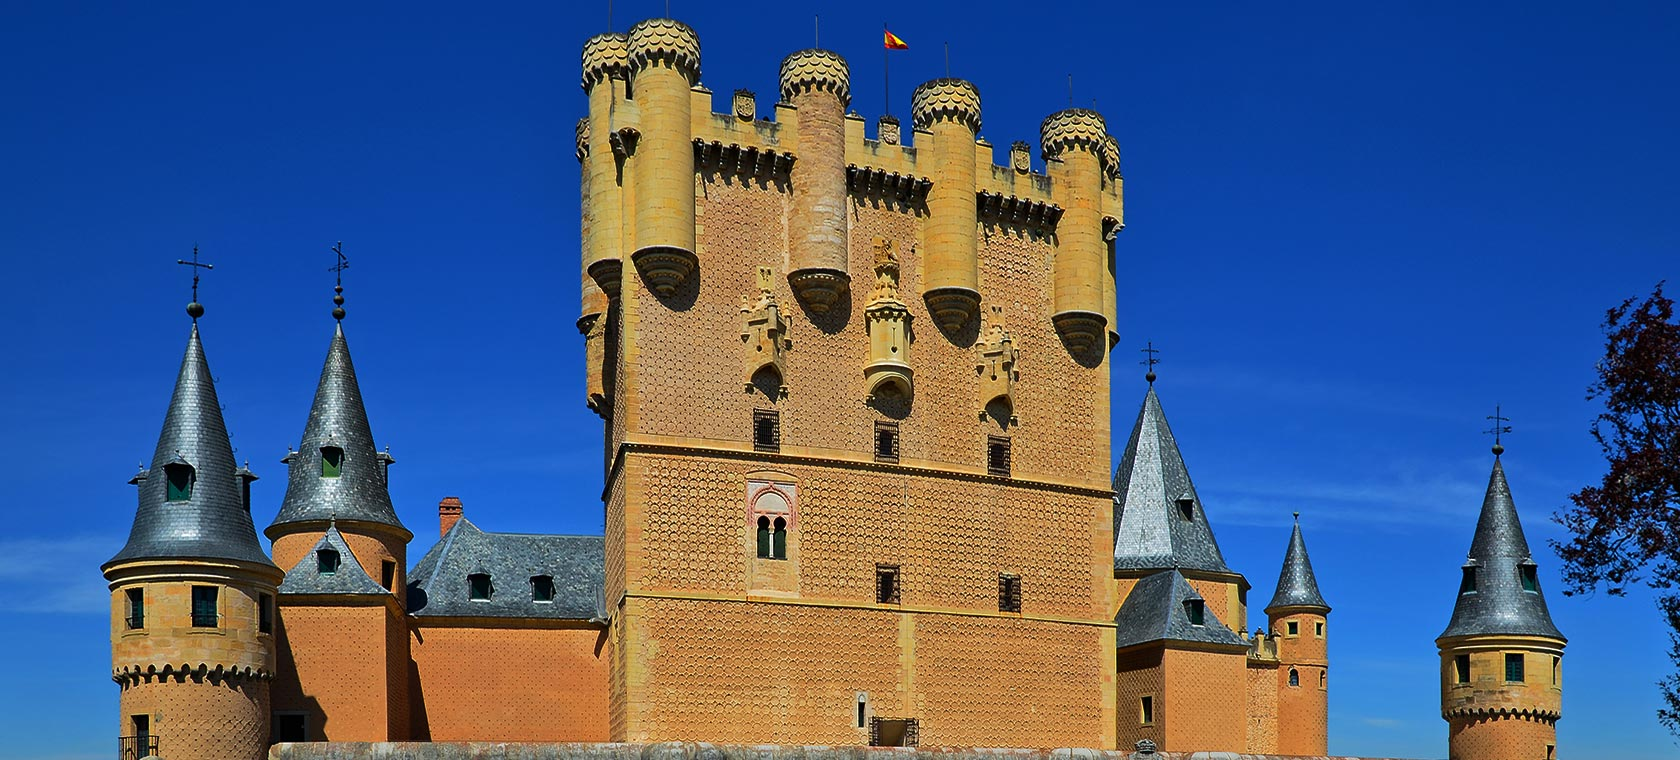 Alcazar of Segovia, Skip the line!